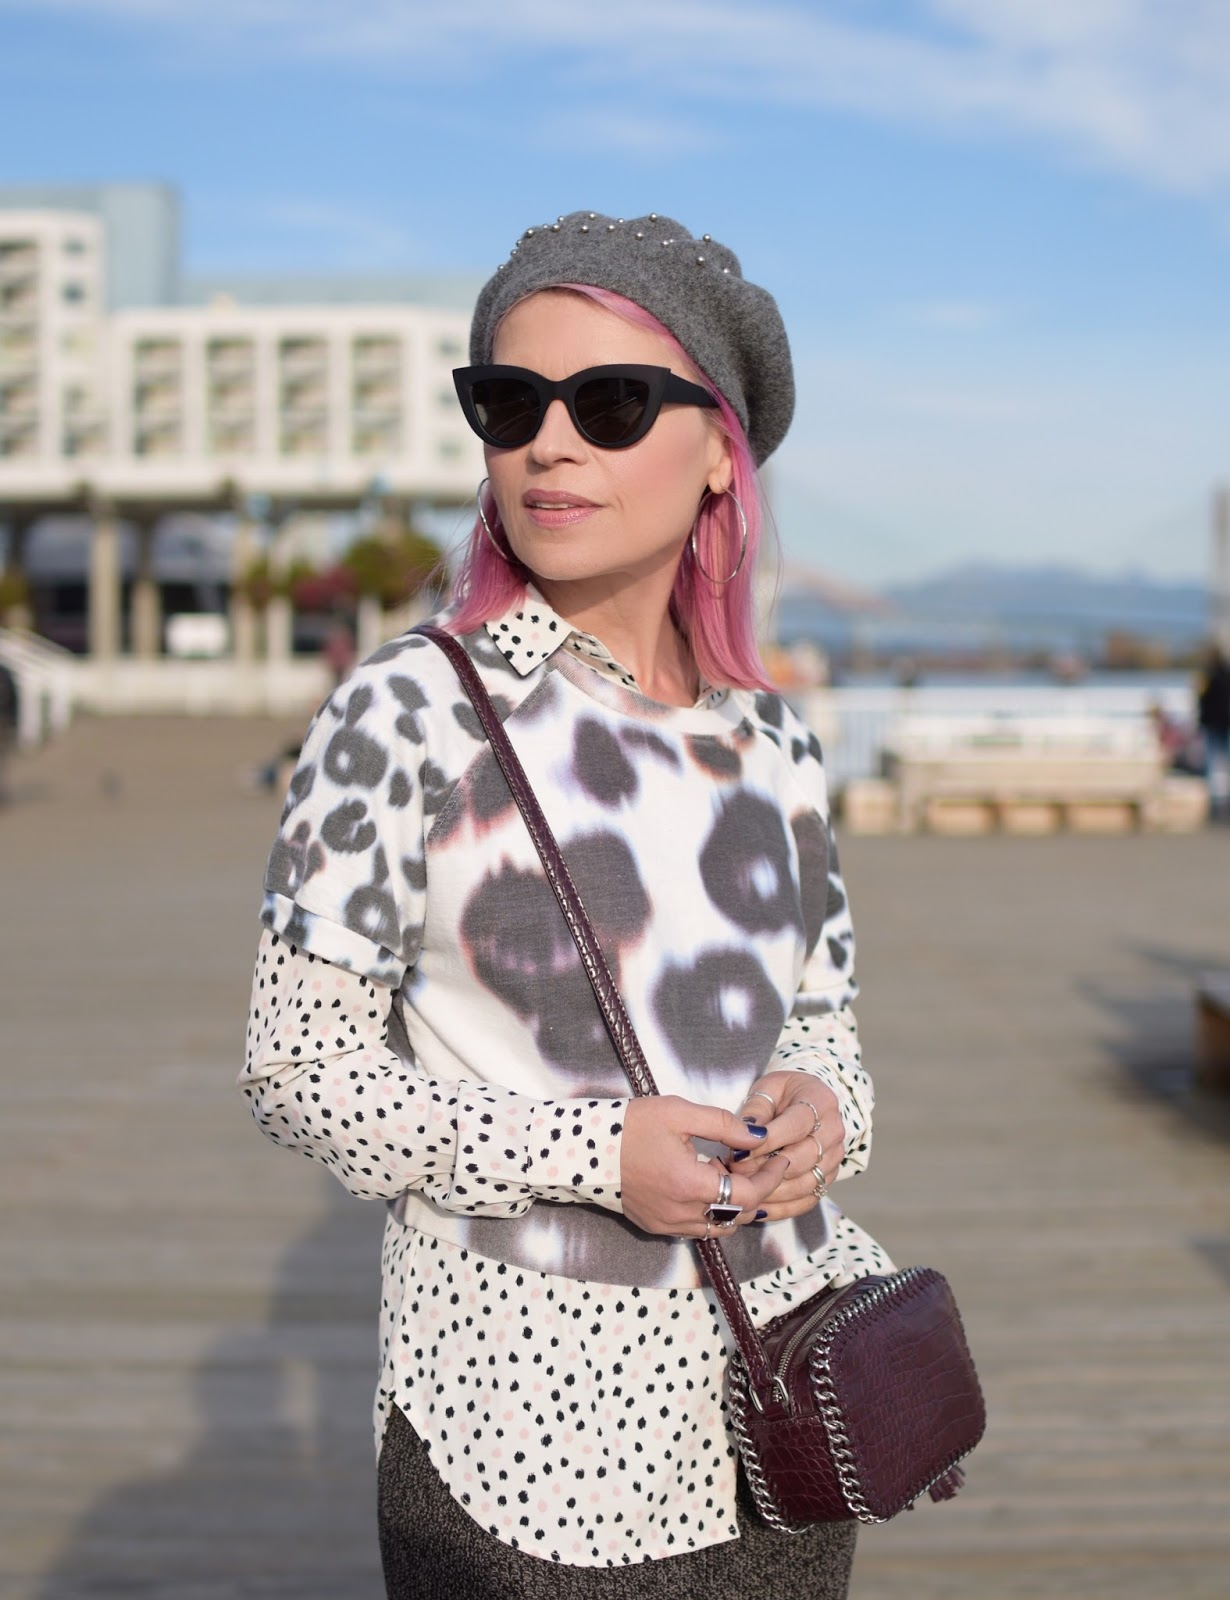 Monika Faulkner outfit inspiration - polka-dot blouse, short-sleeve sweatshirt, beret, cat-eye sunglasses